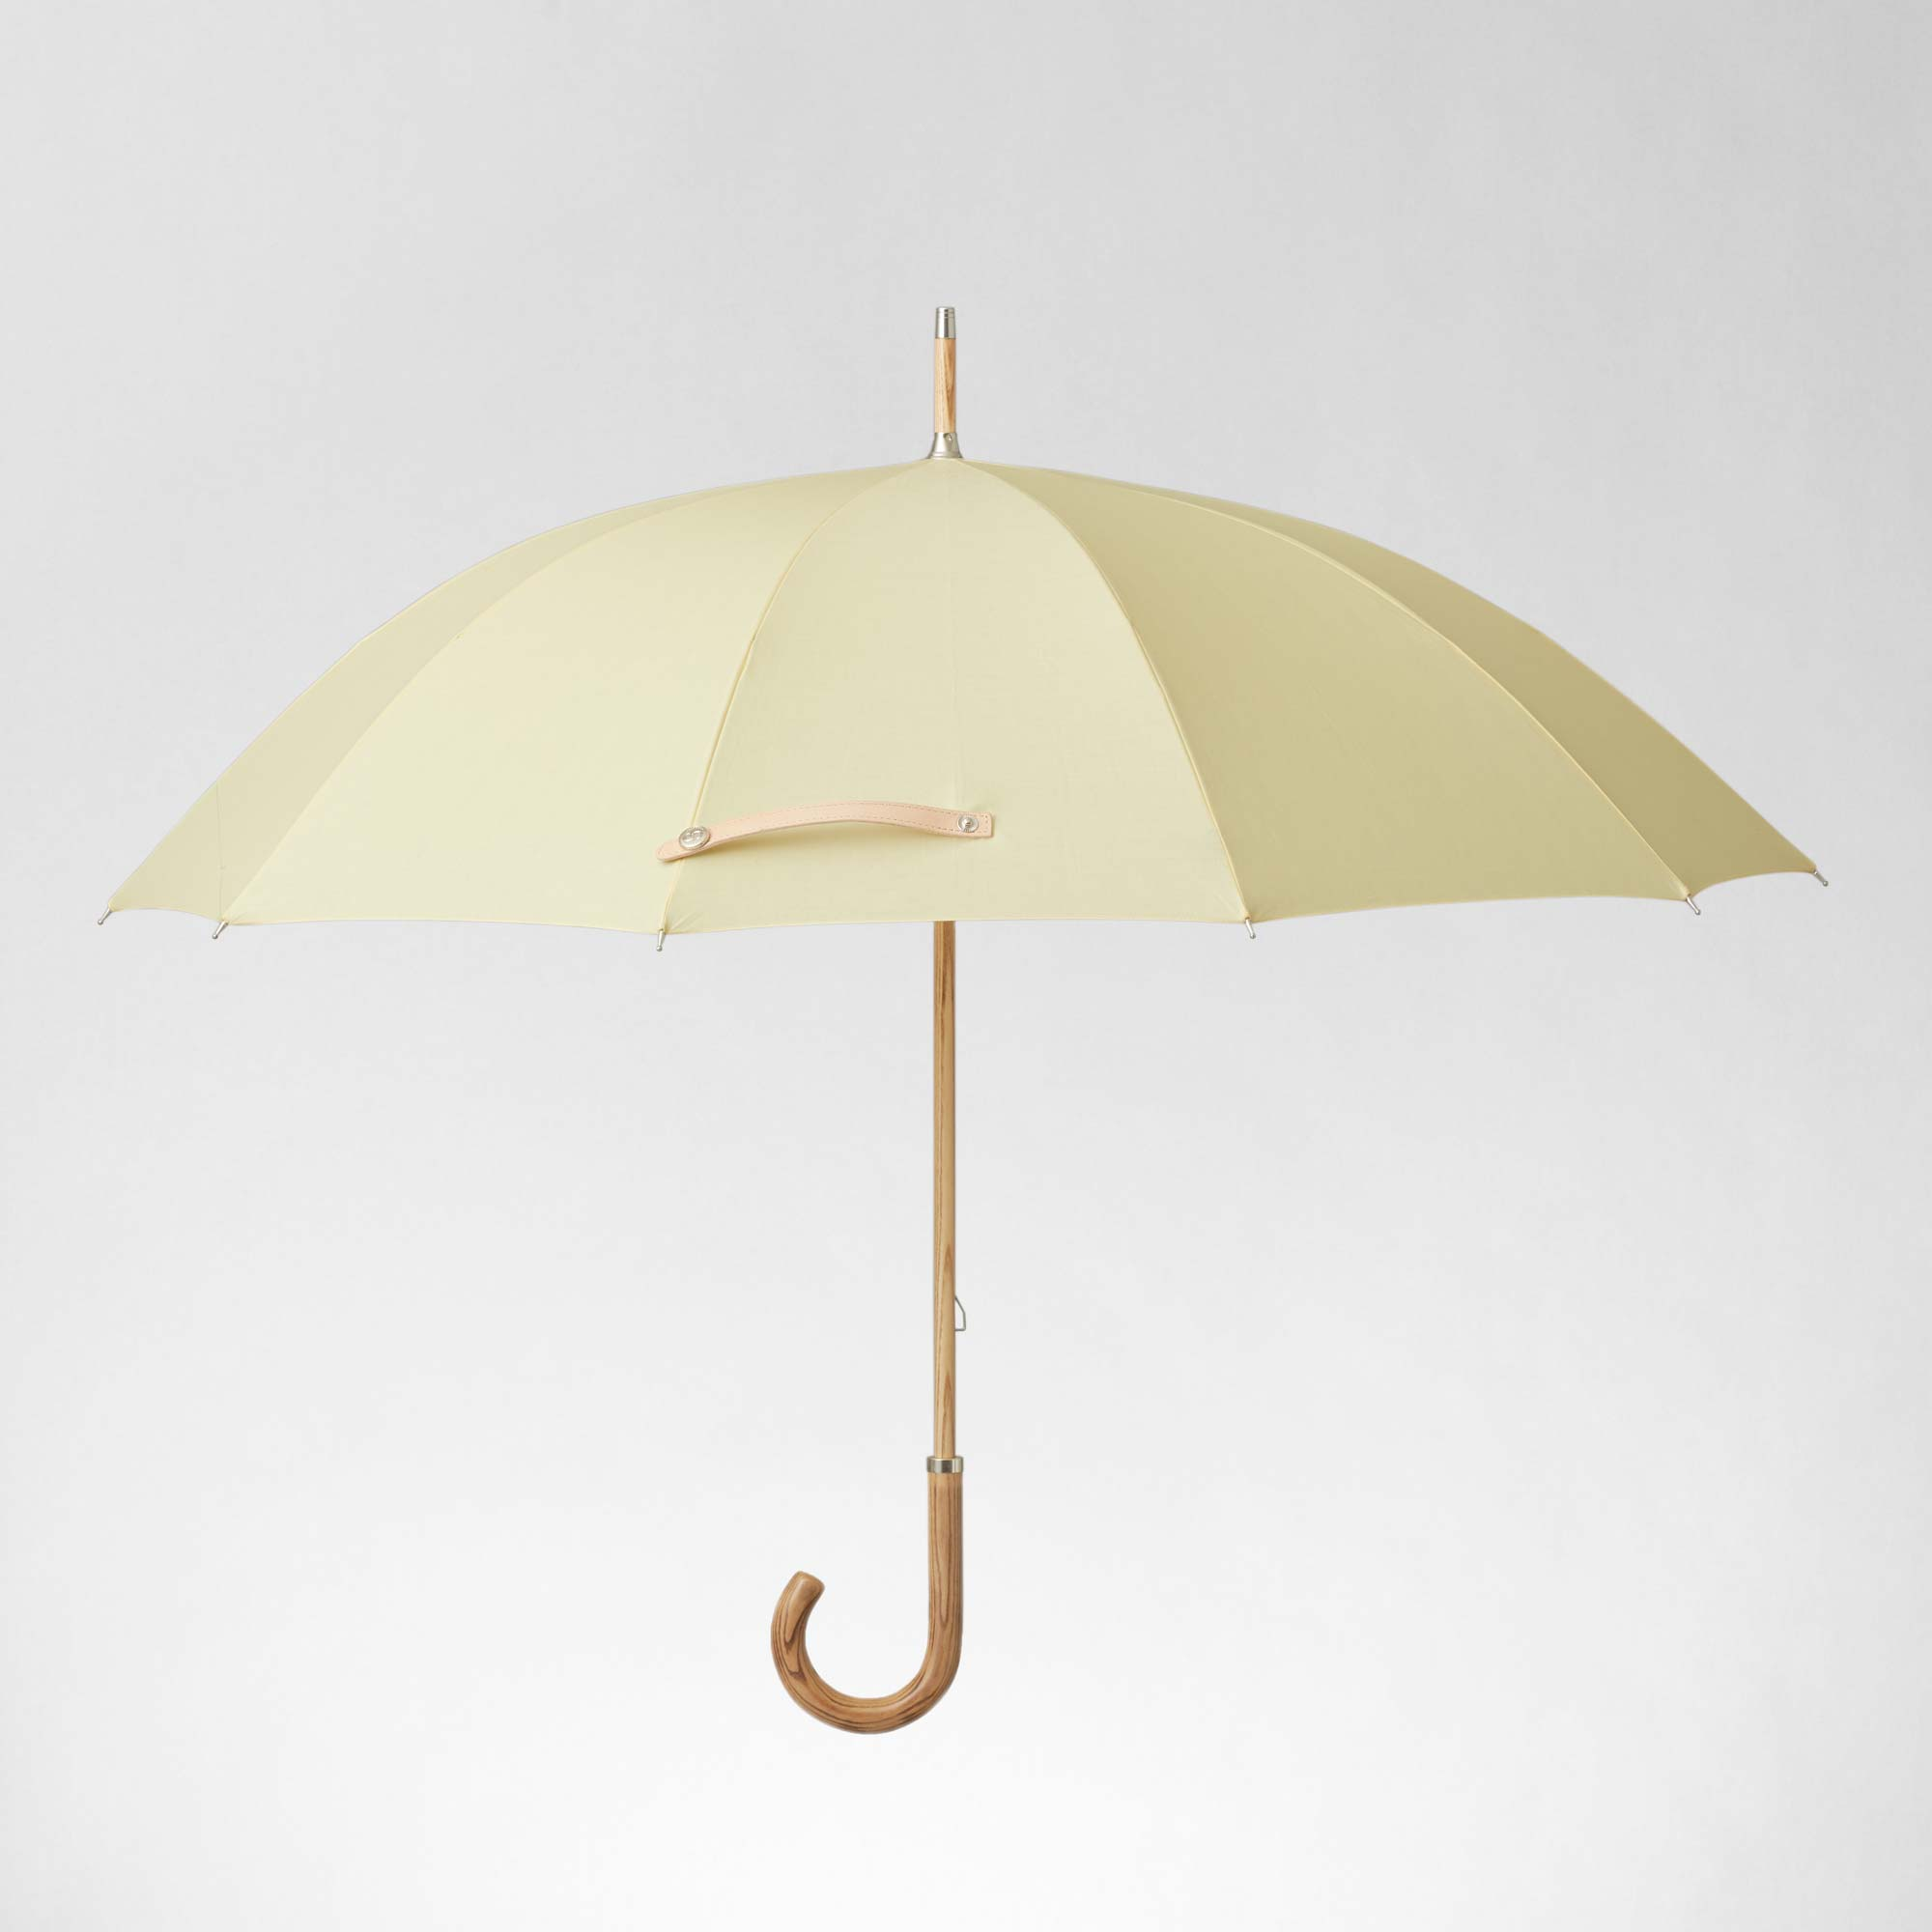 A high quality classic yellow umbrella